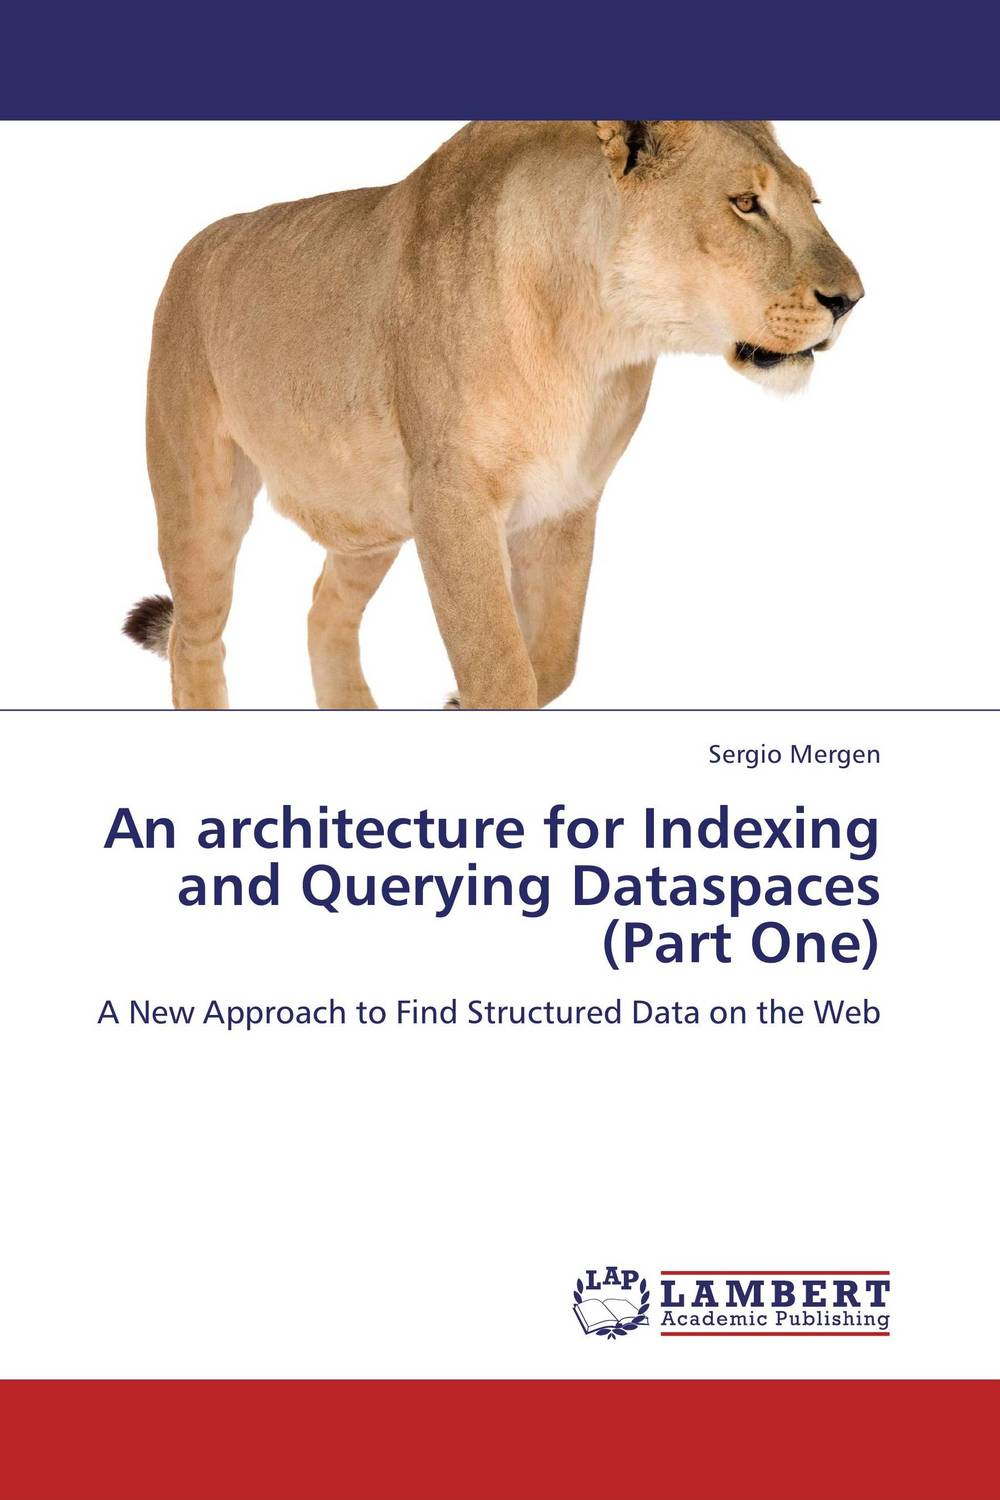 An architecture for Indexing and Querying Dataspaces (Part One) intelligent lifecycle architecture of